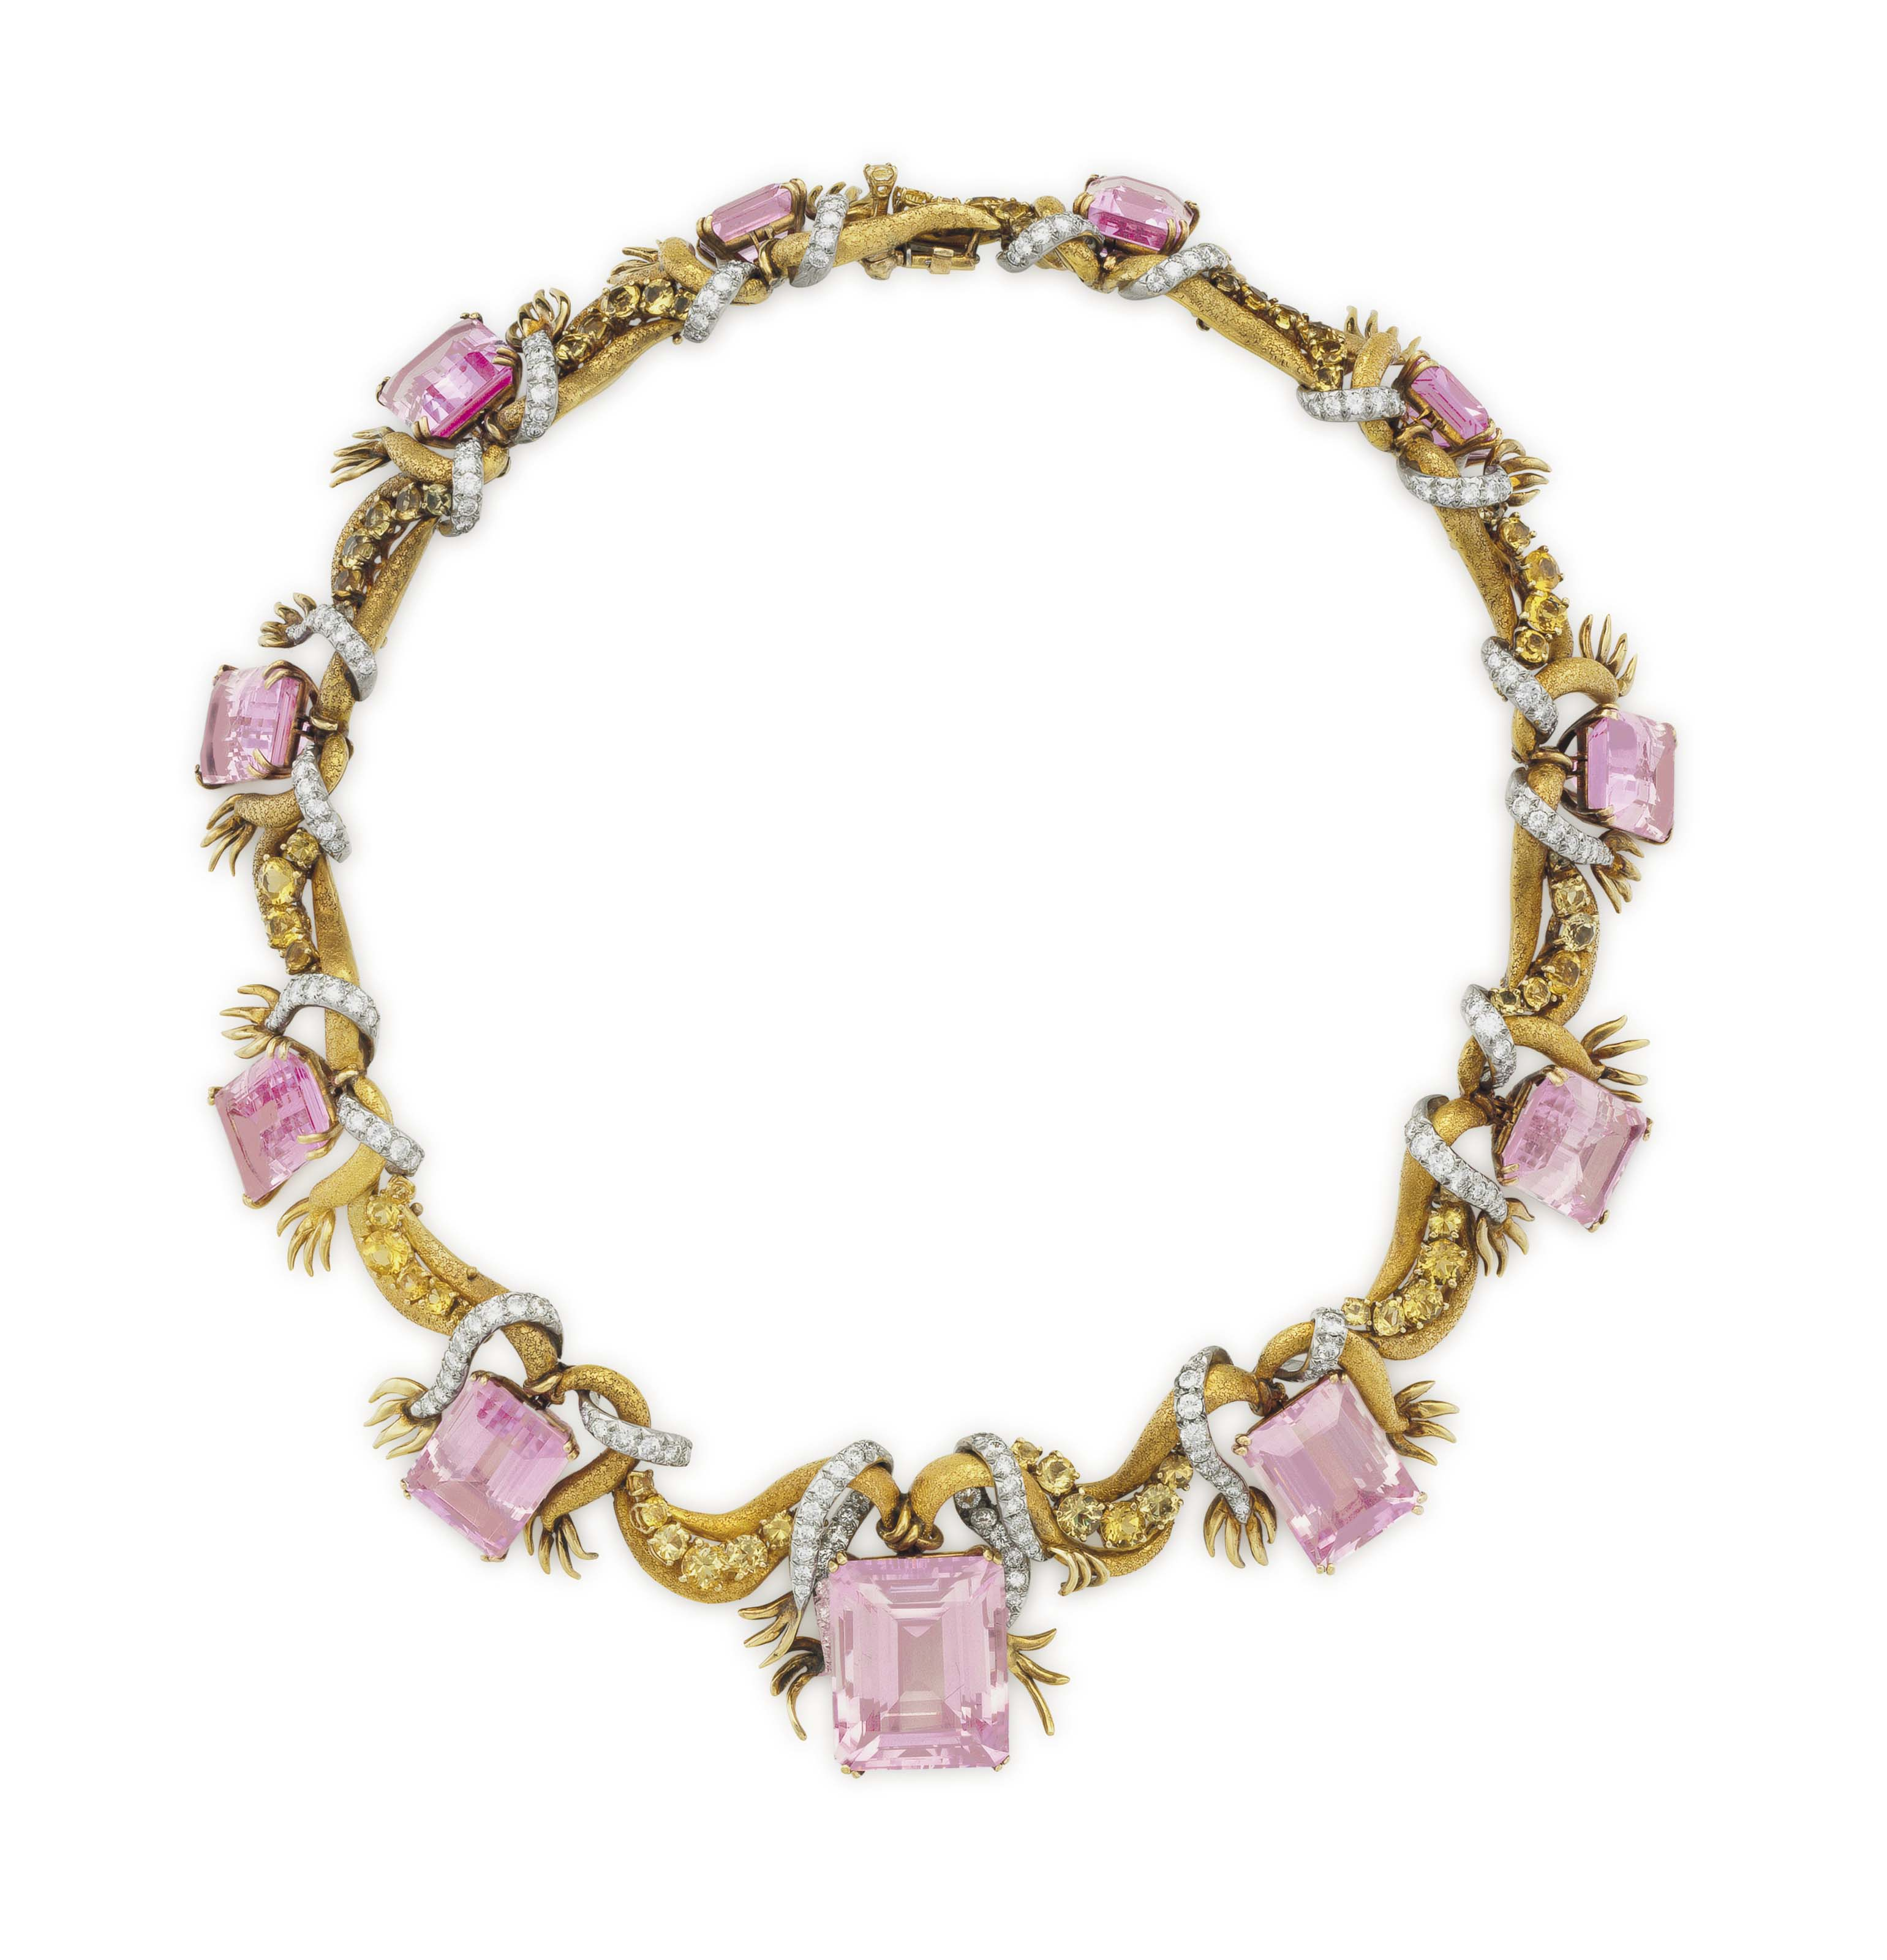 A KUNZITE, DIAMOND AND GOLD NECKLACE, BY MARY KRUMING DOUGLAS